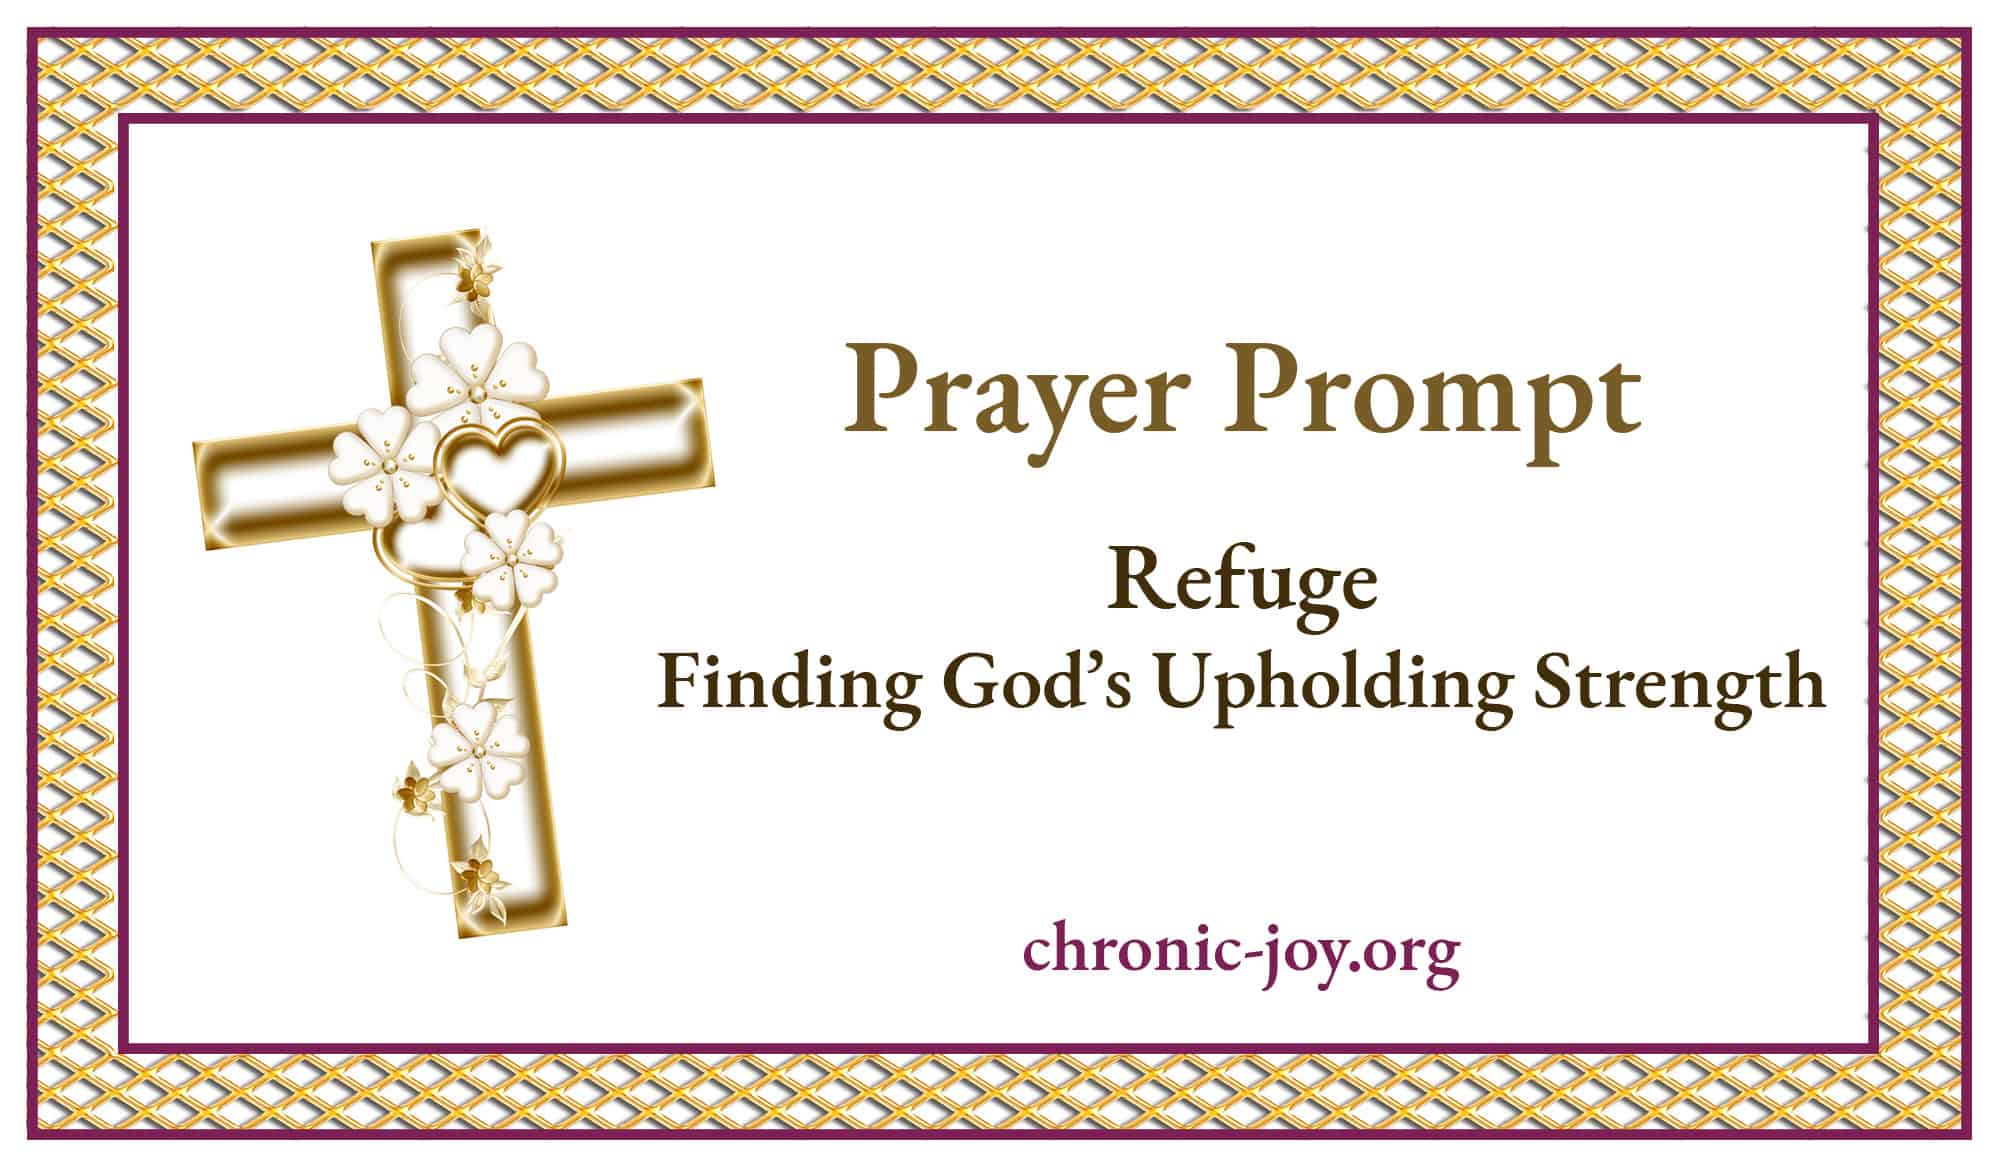 Refuge: Finding God's Upholding Strength